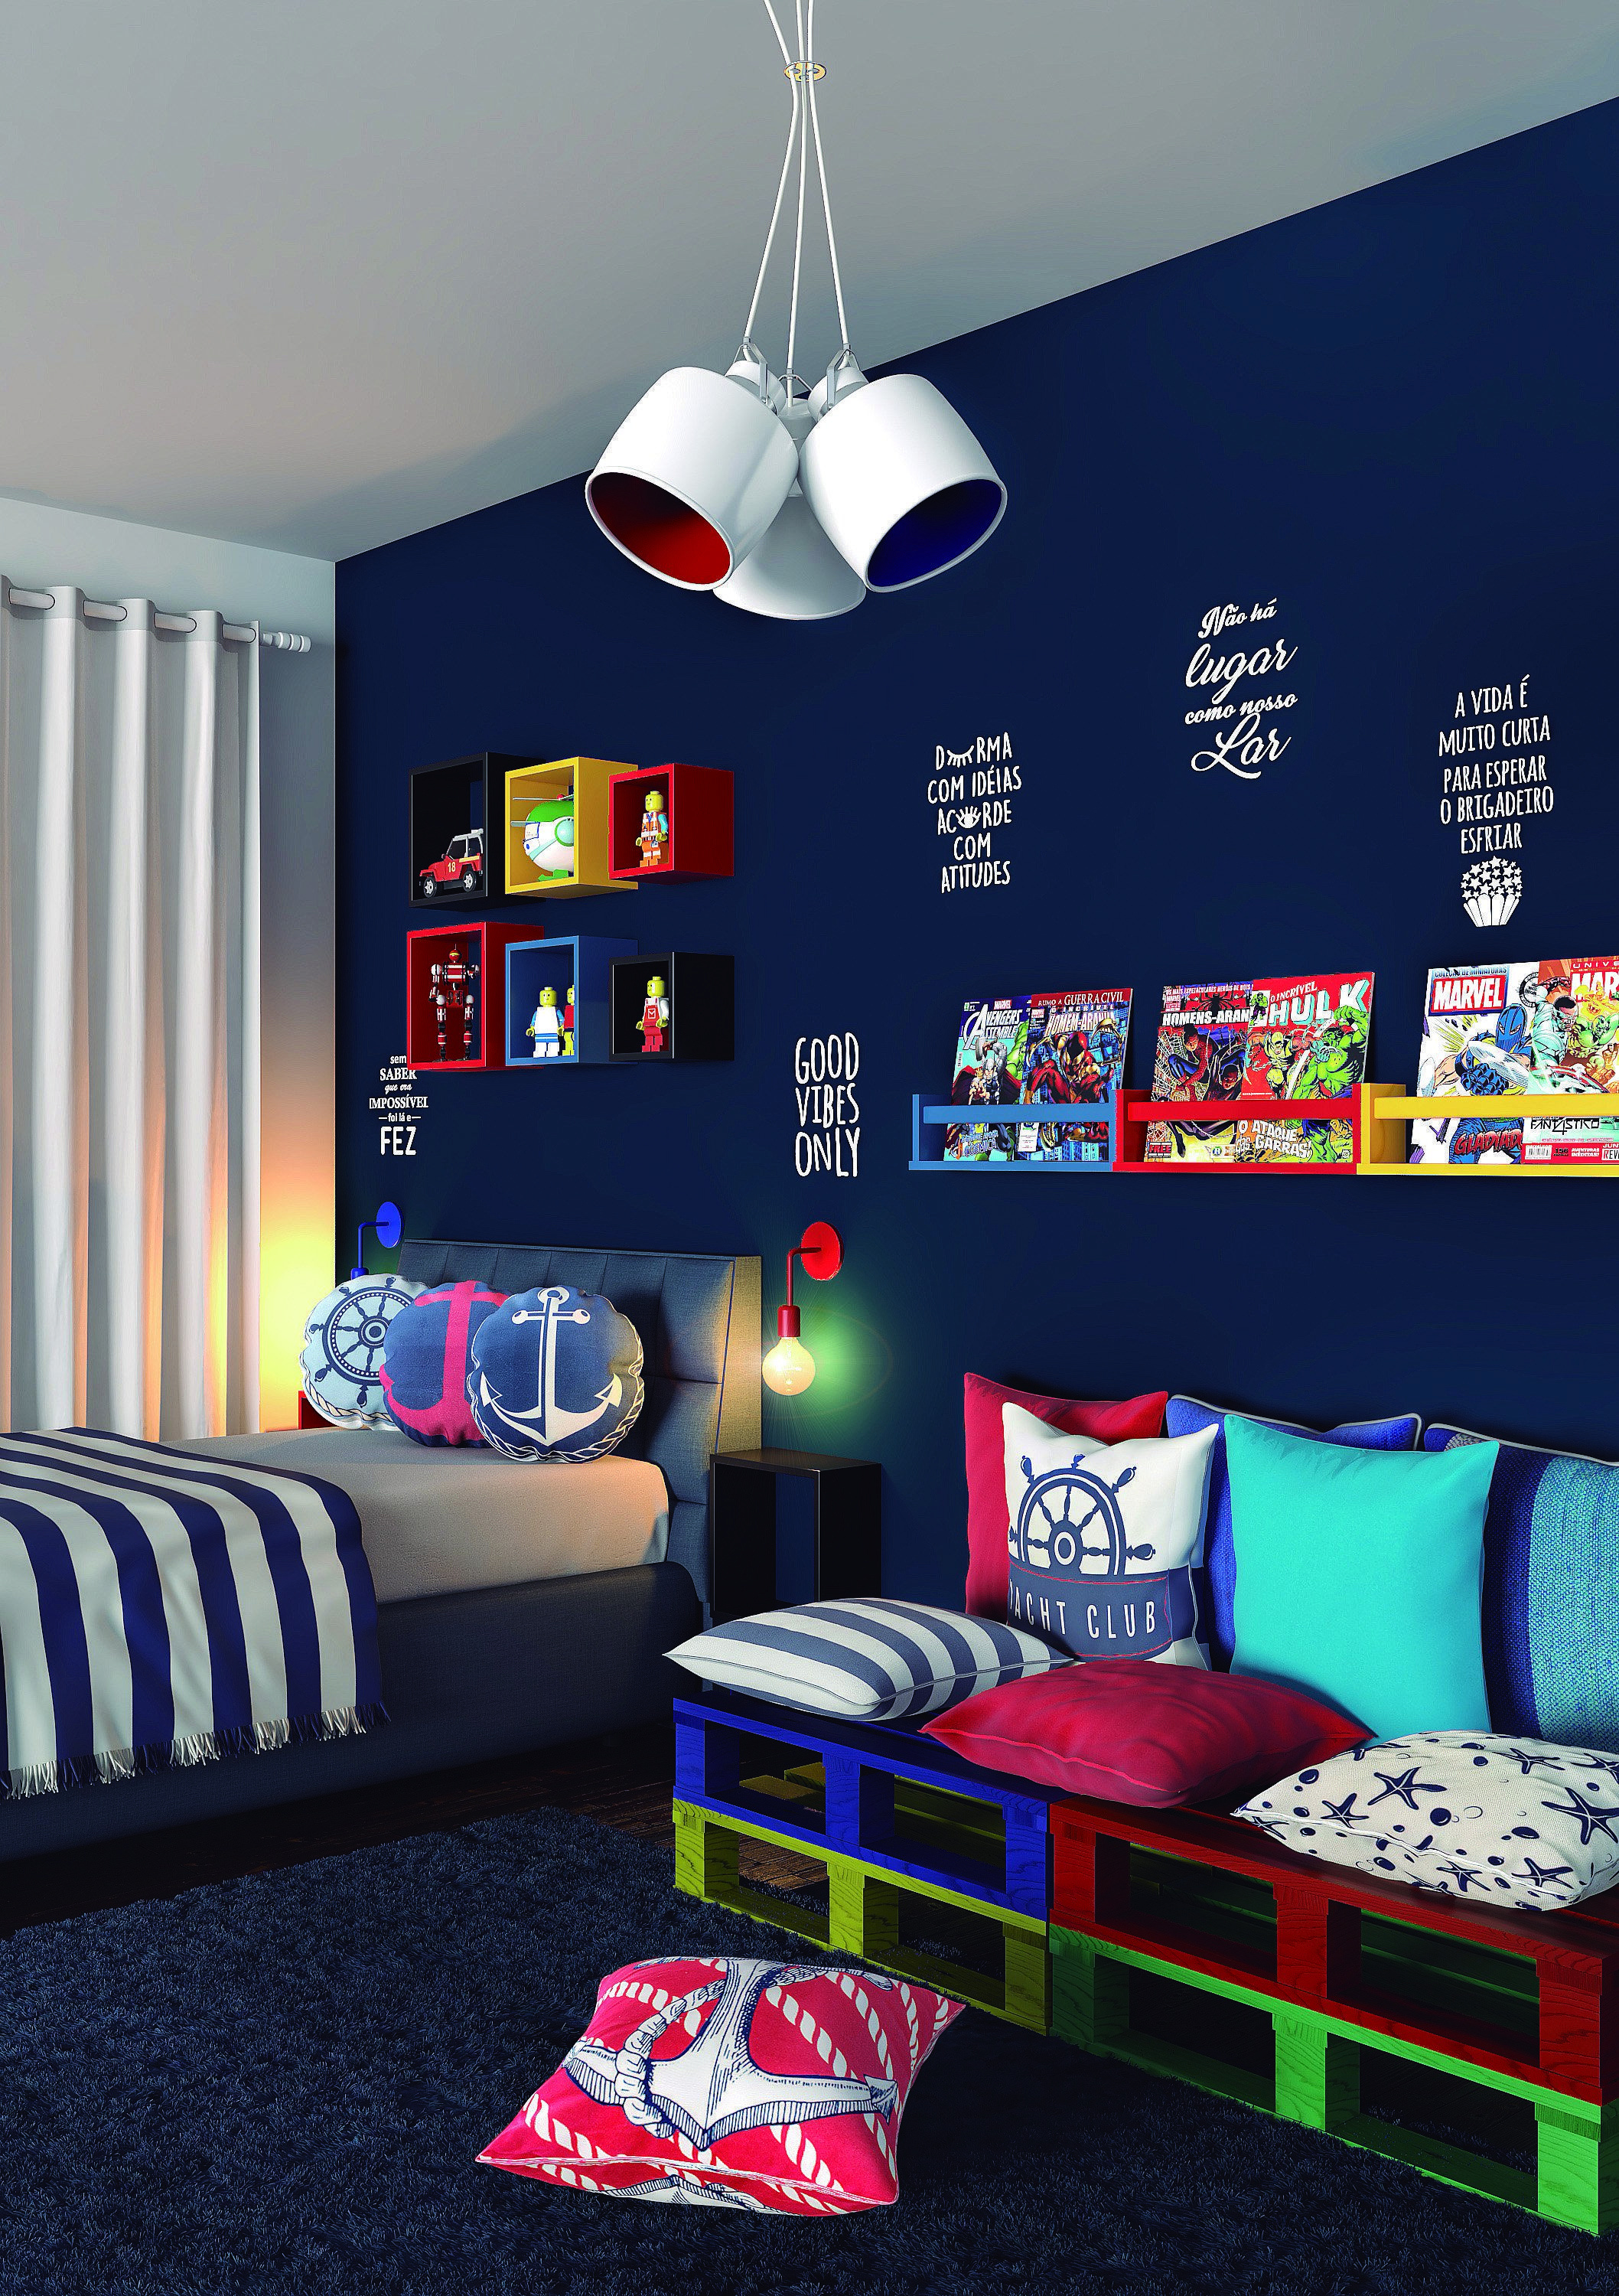 Find more boys bedrooms decorations and furniture with Circu ...